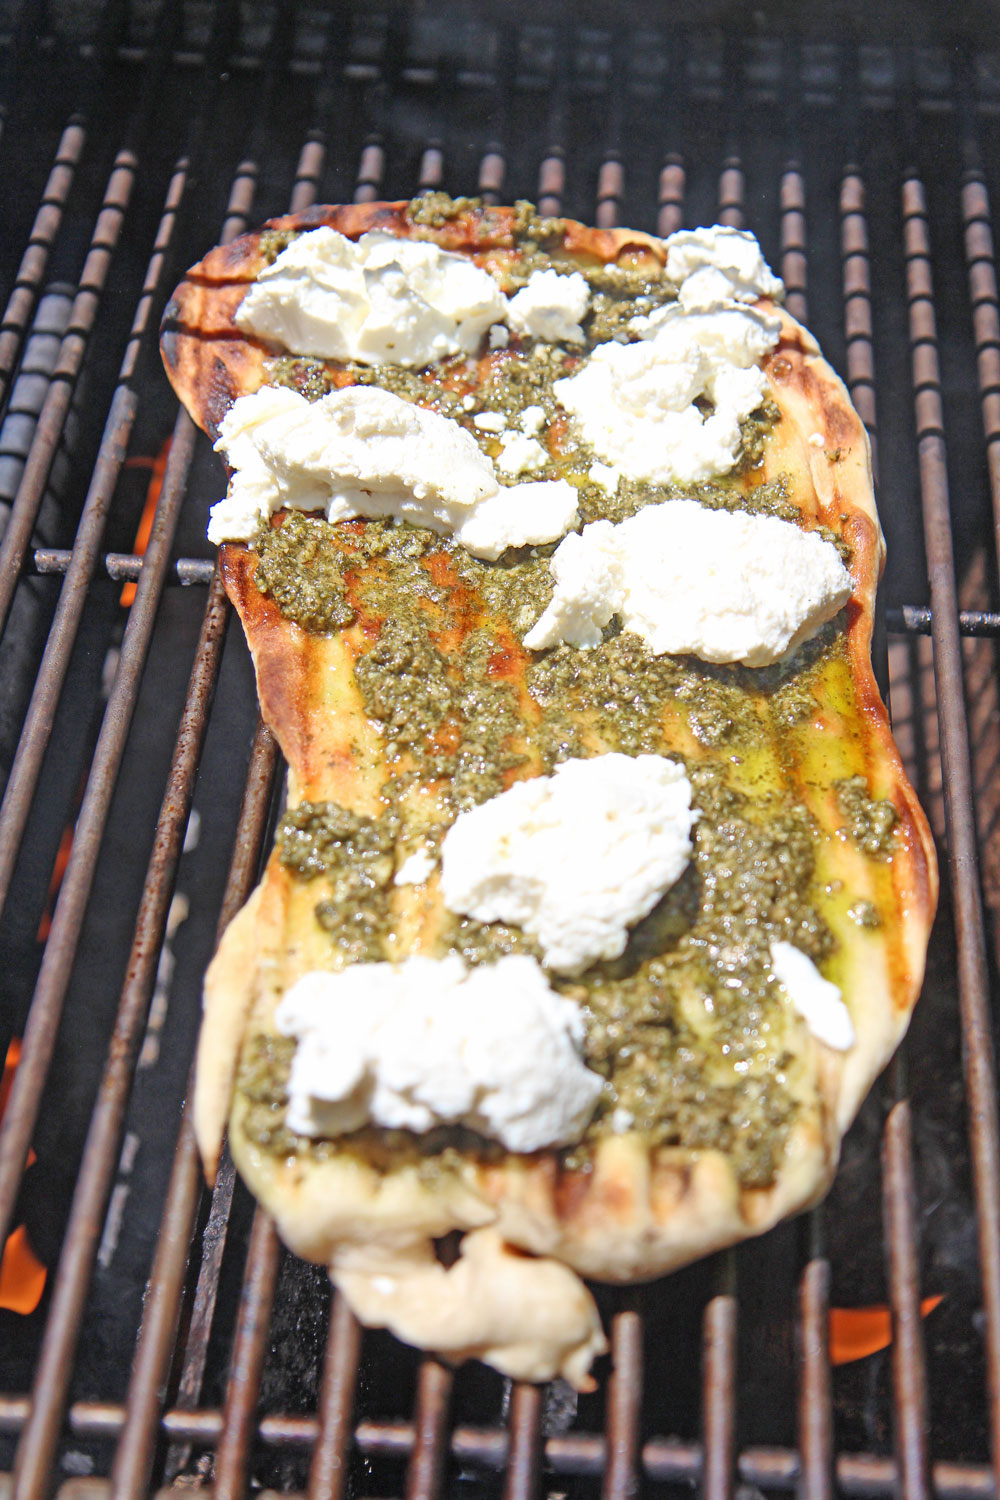 Easy Grilled Pesto Pizza Recipe. This is so easy to make. Grab pizza dough, pesto, riccota cheese, red pepper, and black pepper. You grill 2 minutes per side and dinner is ready. Happy grilling. www.ChopHappy.com #pizzarecipe #grillingrecipe